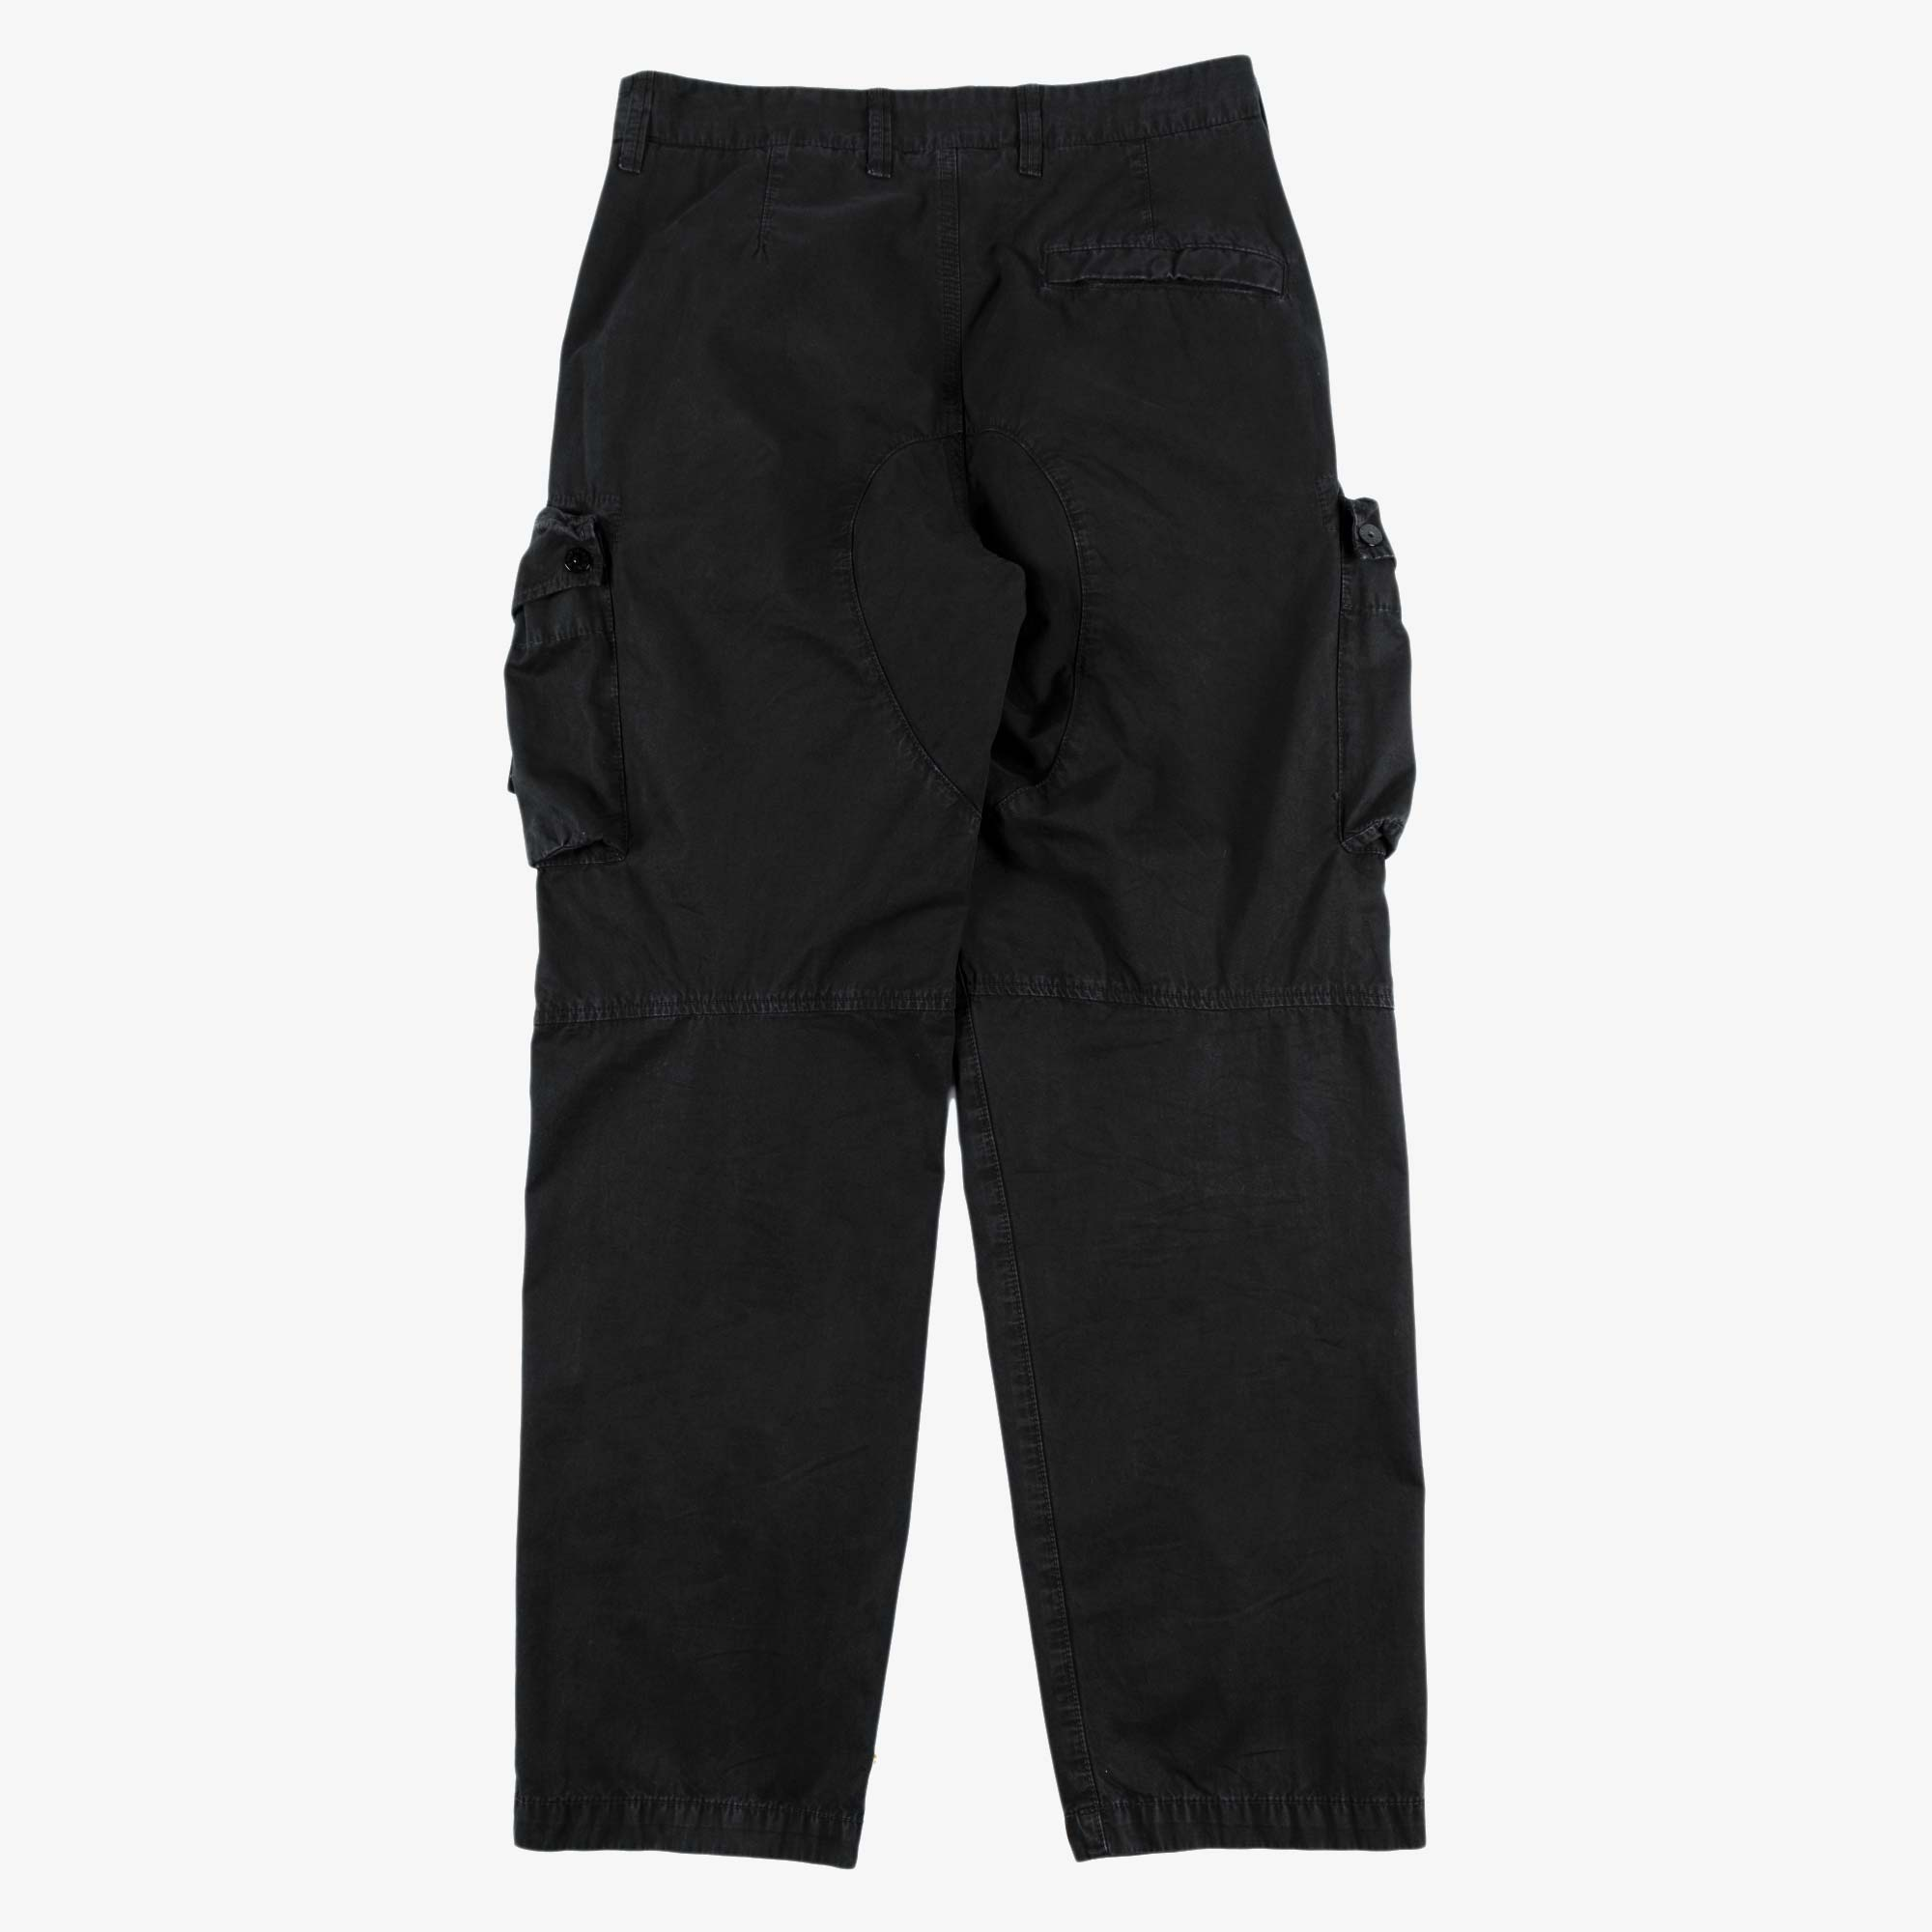 Stone Island T.CO Old Effect Cargo Pant 7415319WA - Black 6